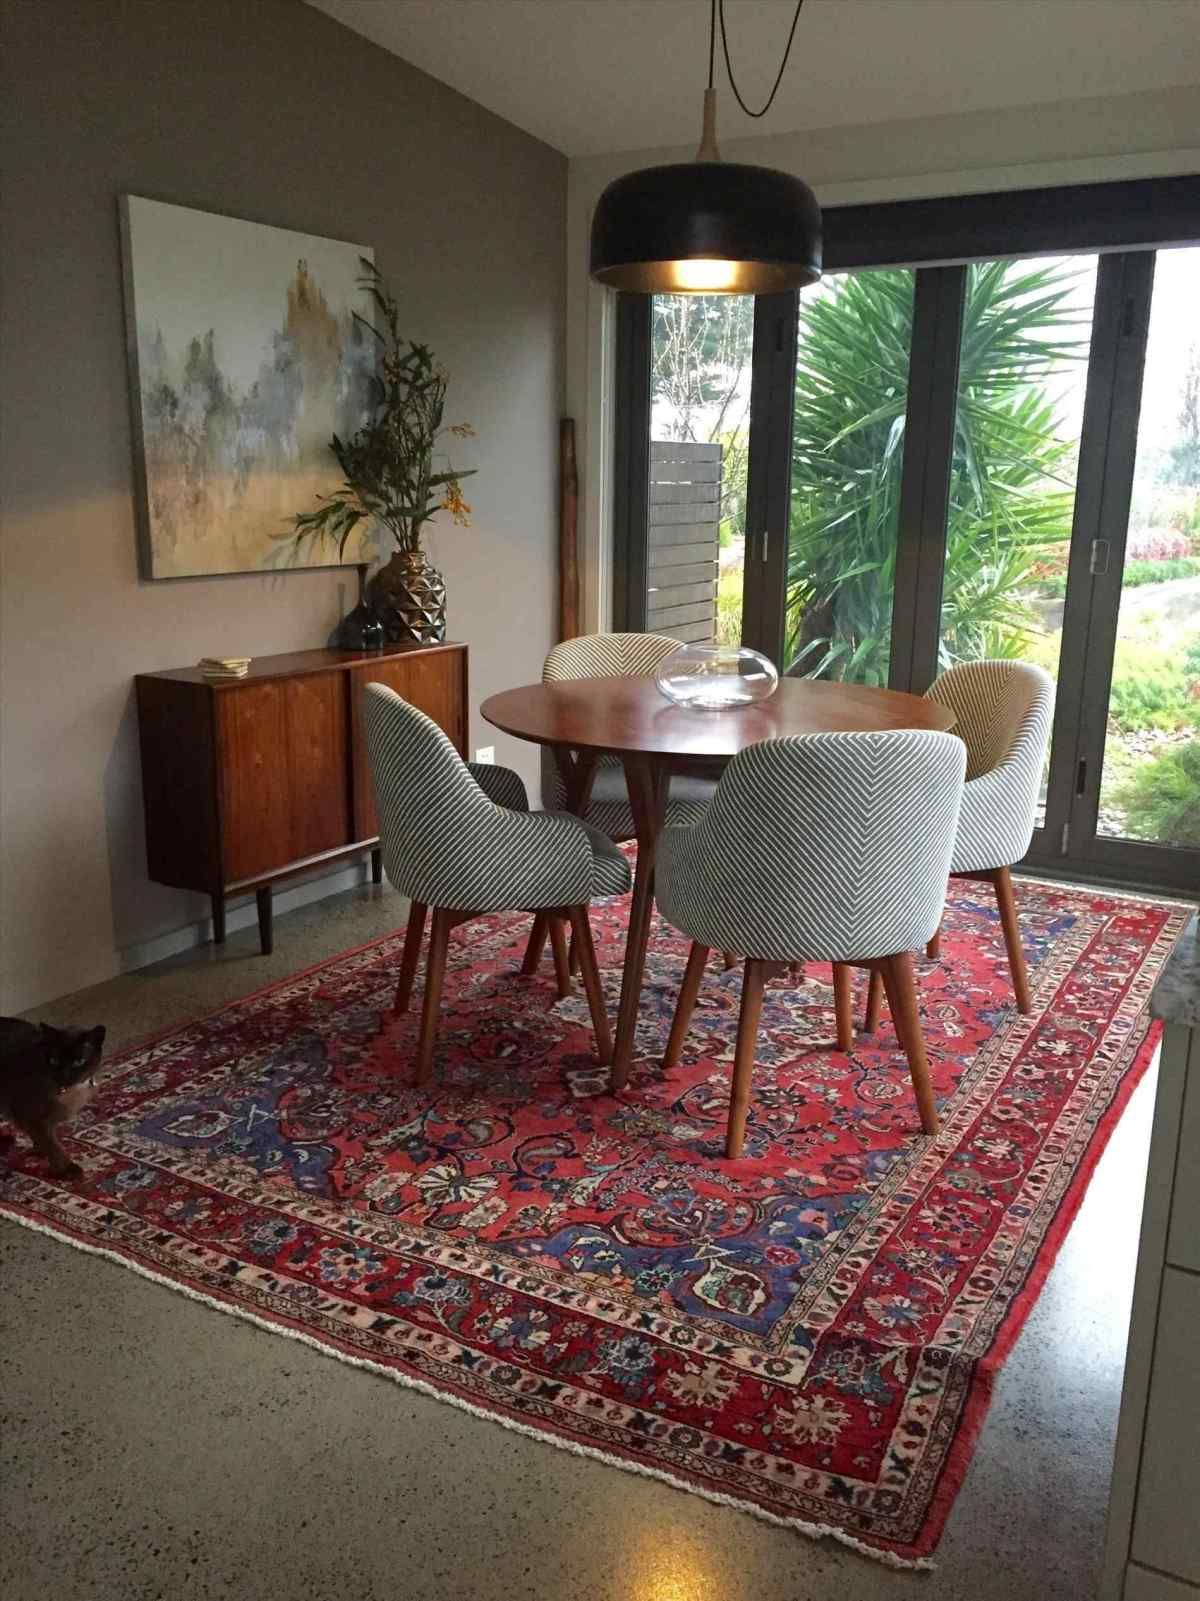 How To Decorate With Persian Rugs (Best 10+ Pictures ...